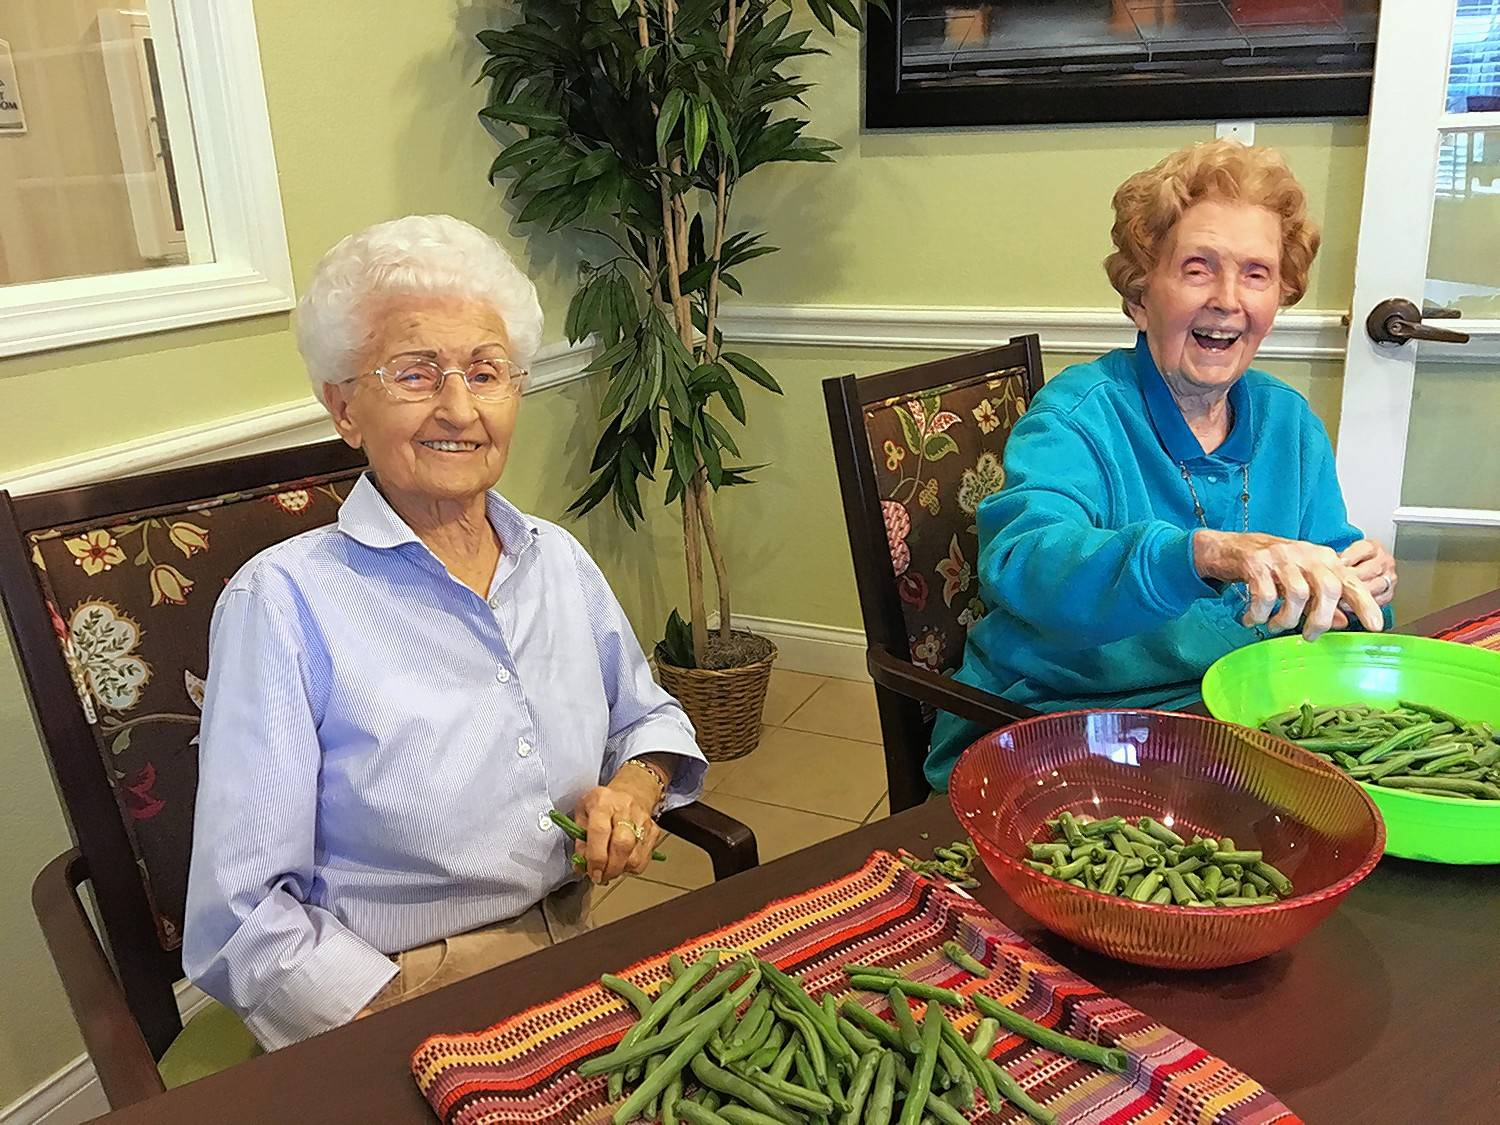 Residents of a memory care facility keep busy during the day with tasks or other activitiese that improve their daily lives.